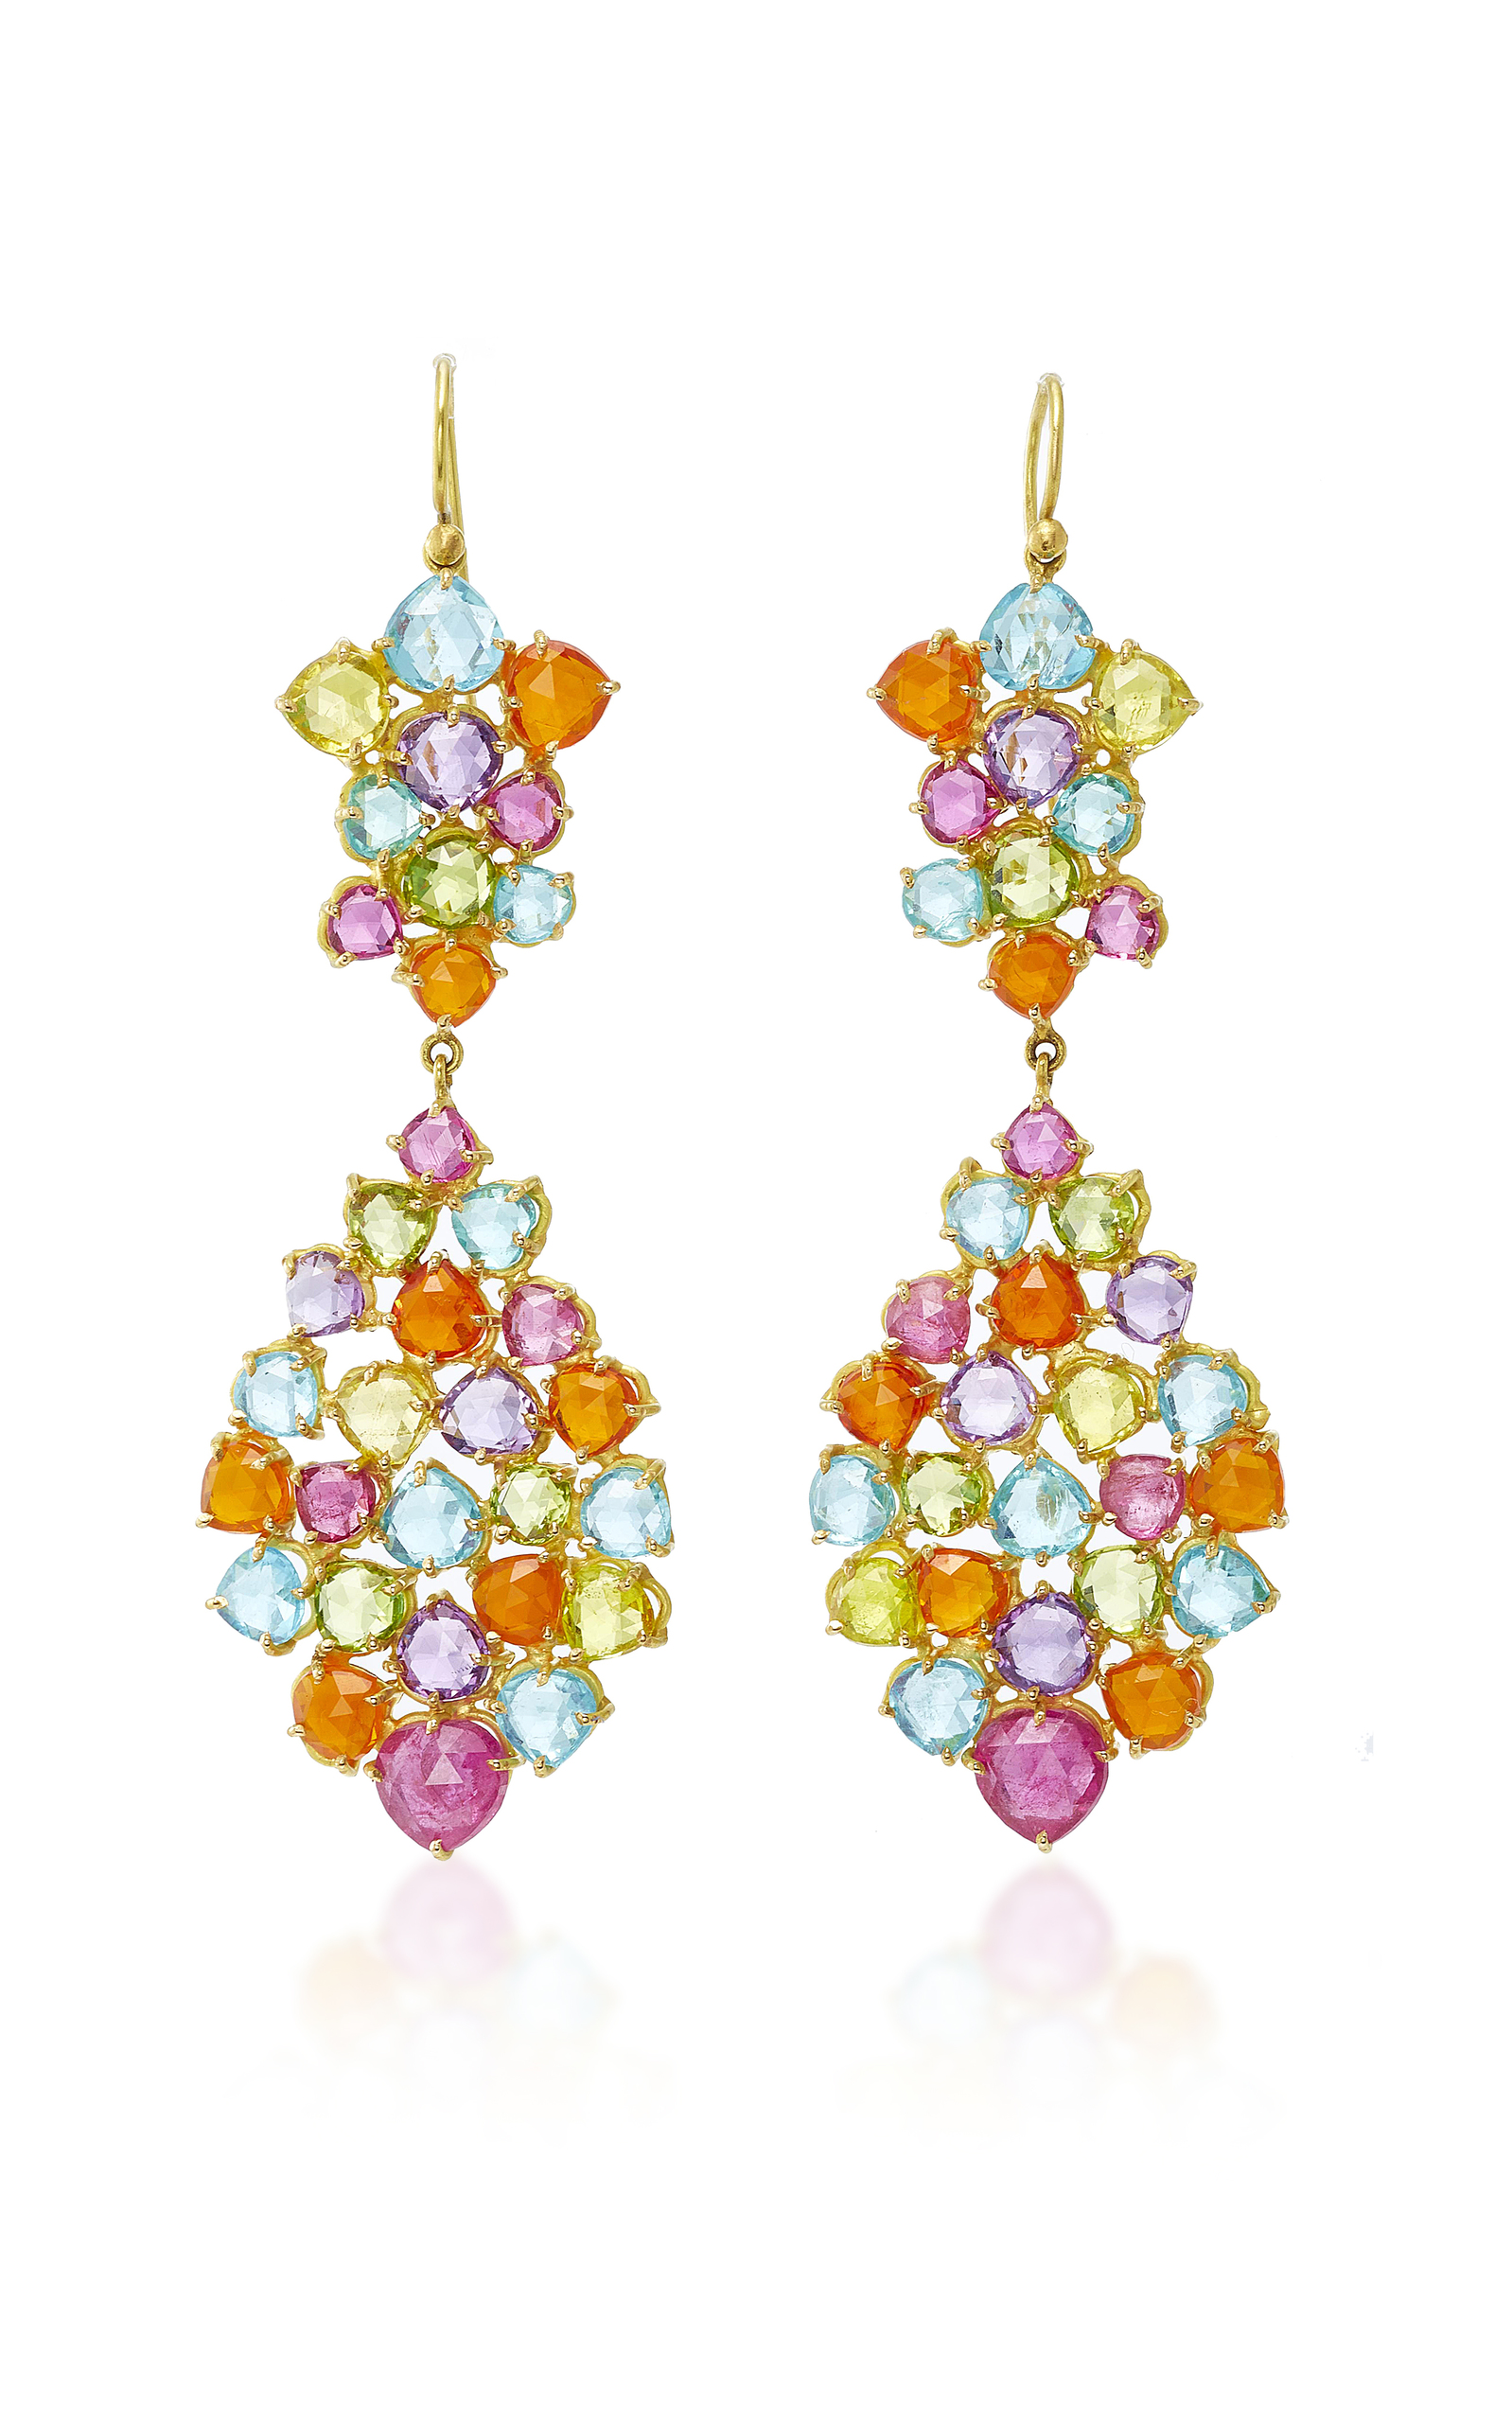 gemstones estate earrings drop multicolor jewels manfredi jewelry collections img products gemstone